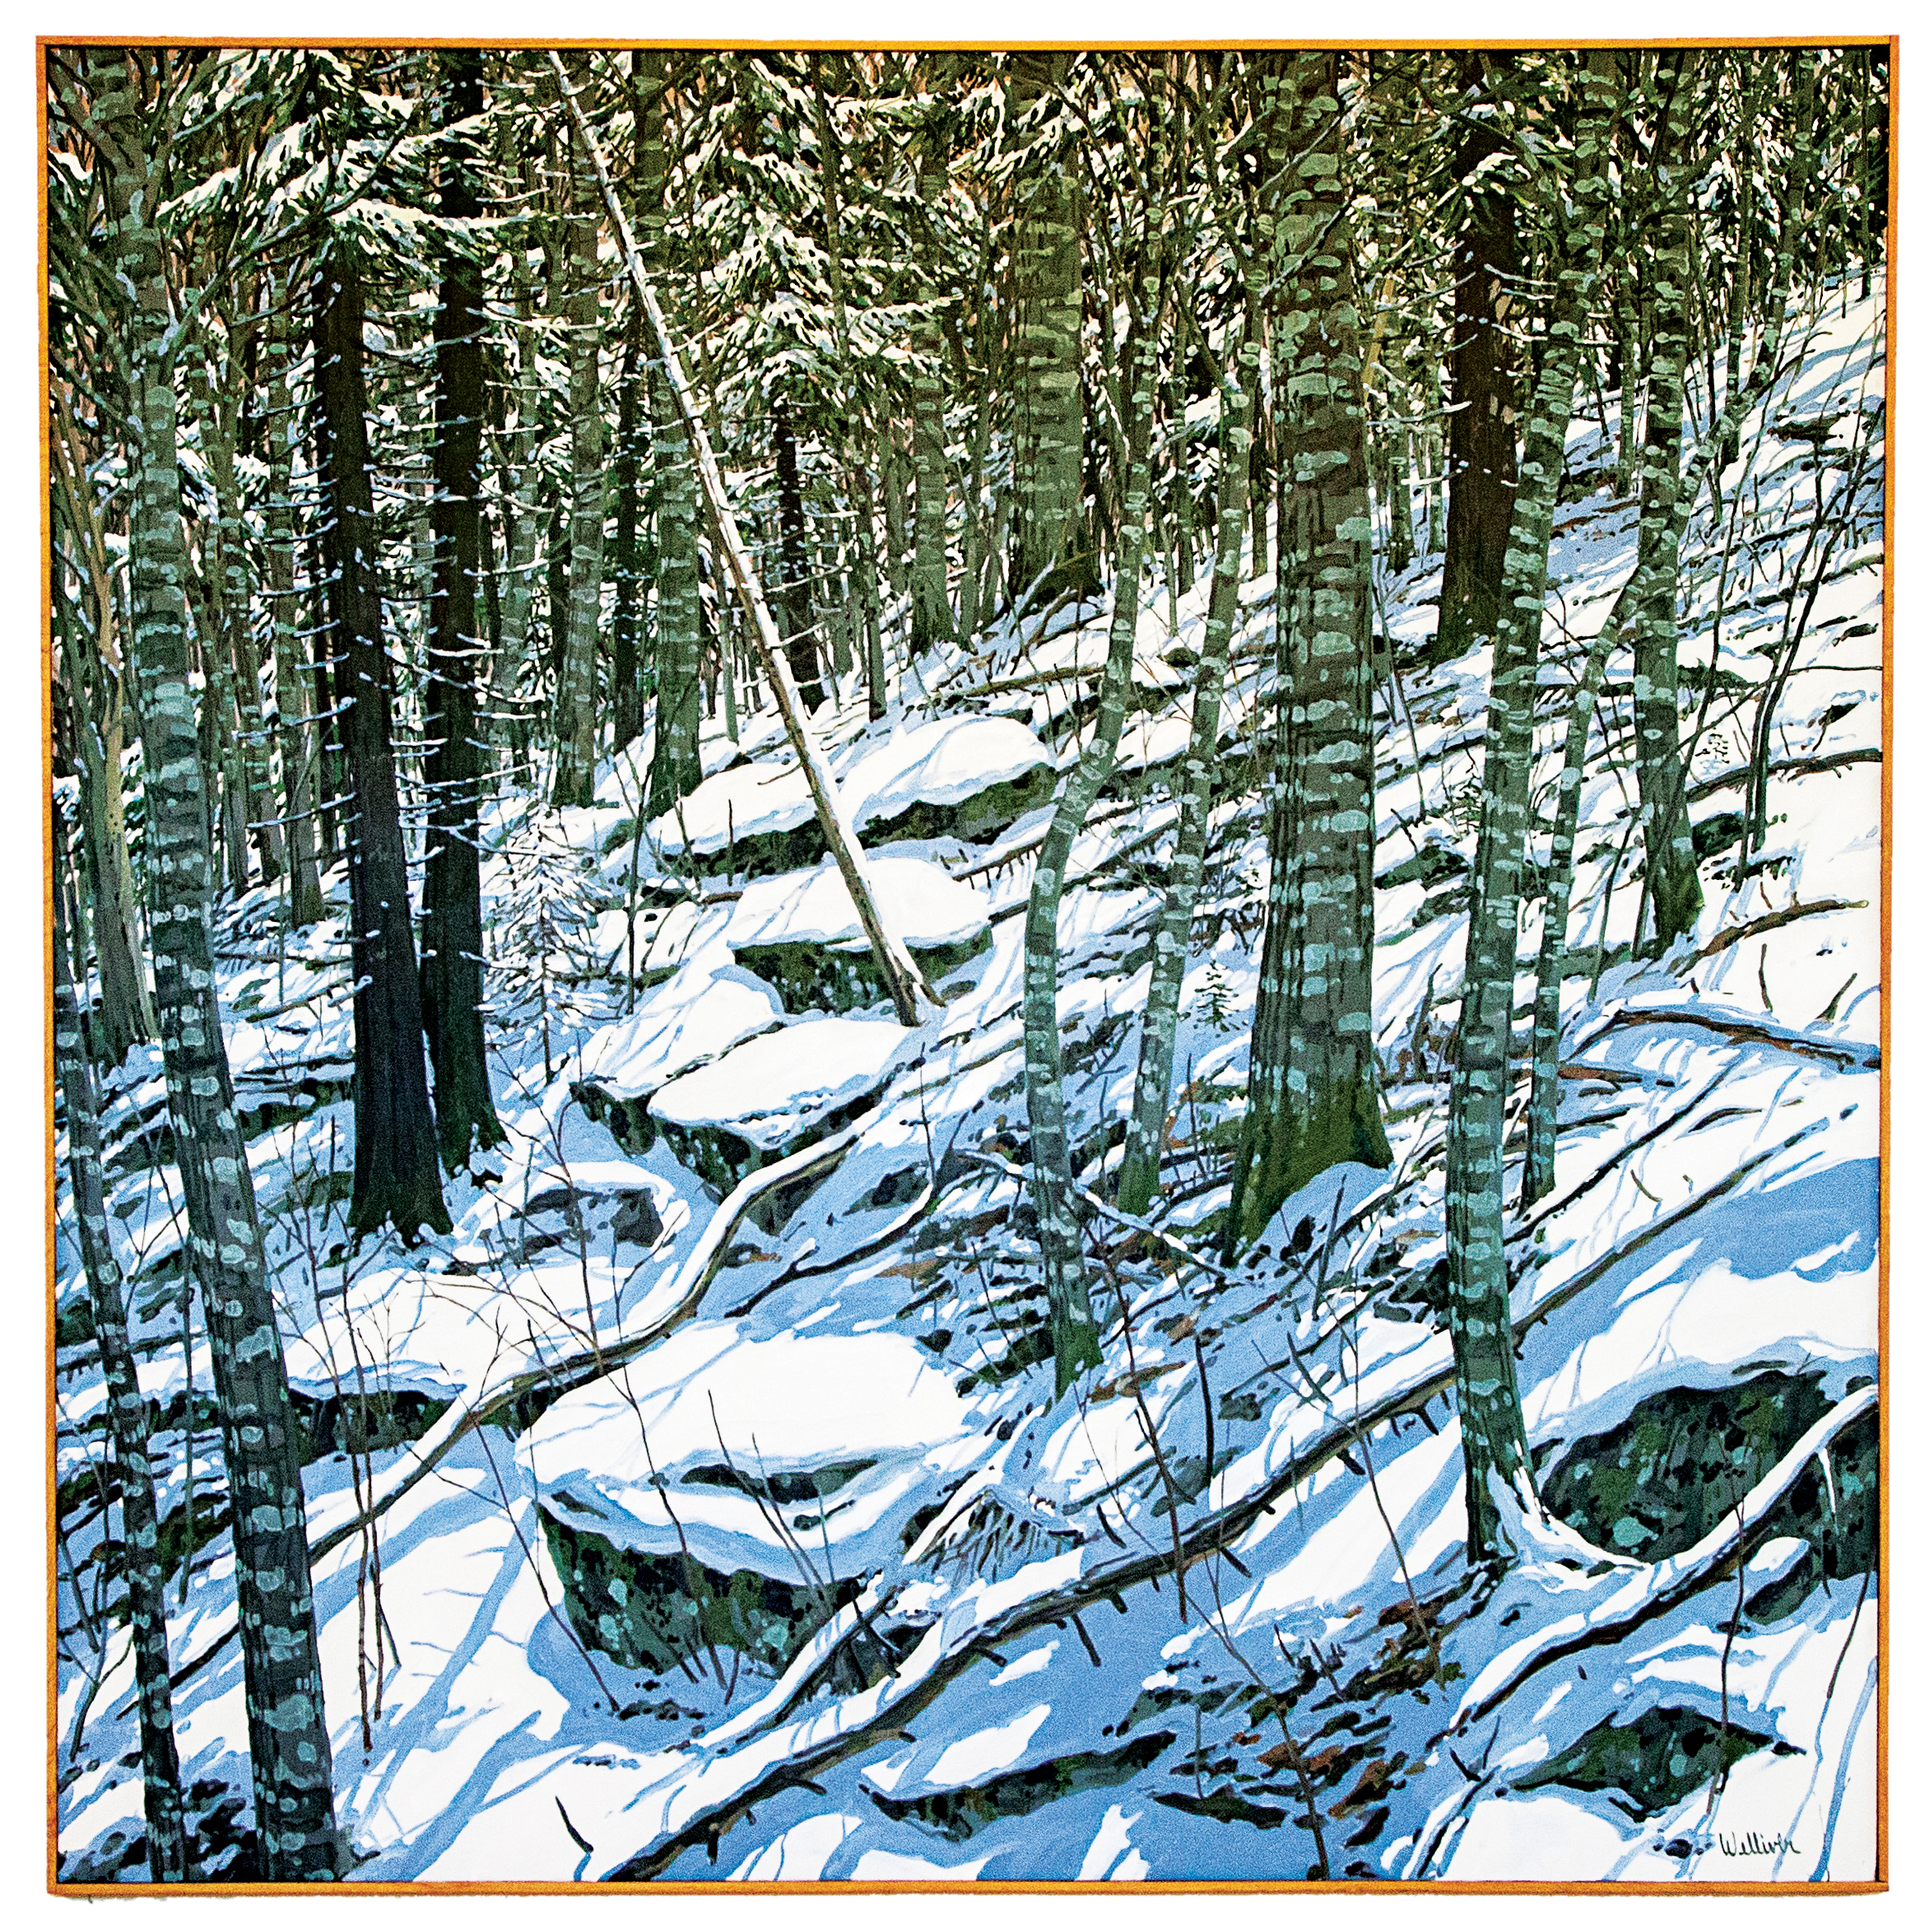 Snow on East Bank   Neil Welliver  (Oil on Canvas)   Painted in 1981, this large (96 x 96) oil painting was donated to the School by E.B. Smith '62. Welliver was best known for his large-scale landscape paintings, inspired by the deep woods near his home in Belfast, Maine. With its placement on the second floor of Ohrstrom Library, the painting faces the School's own natural oasis, which likely would have inspired the artist.